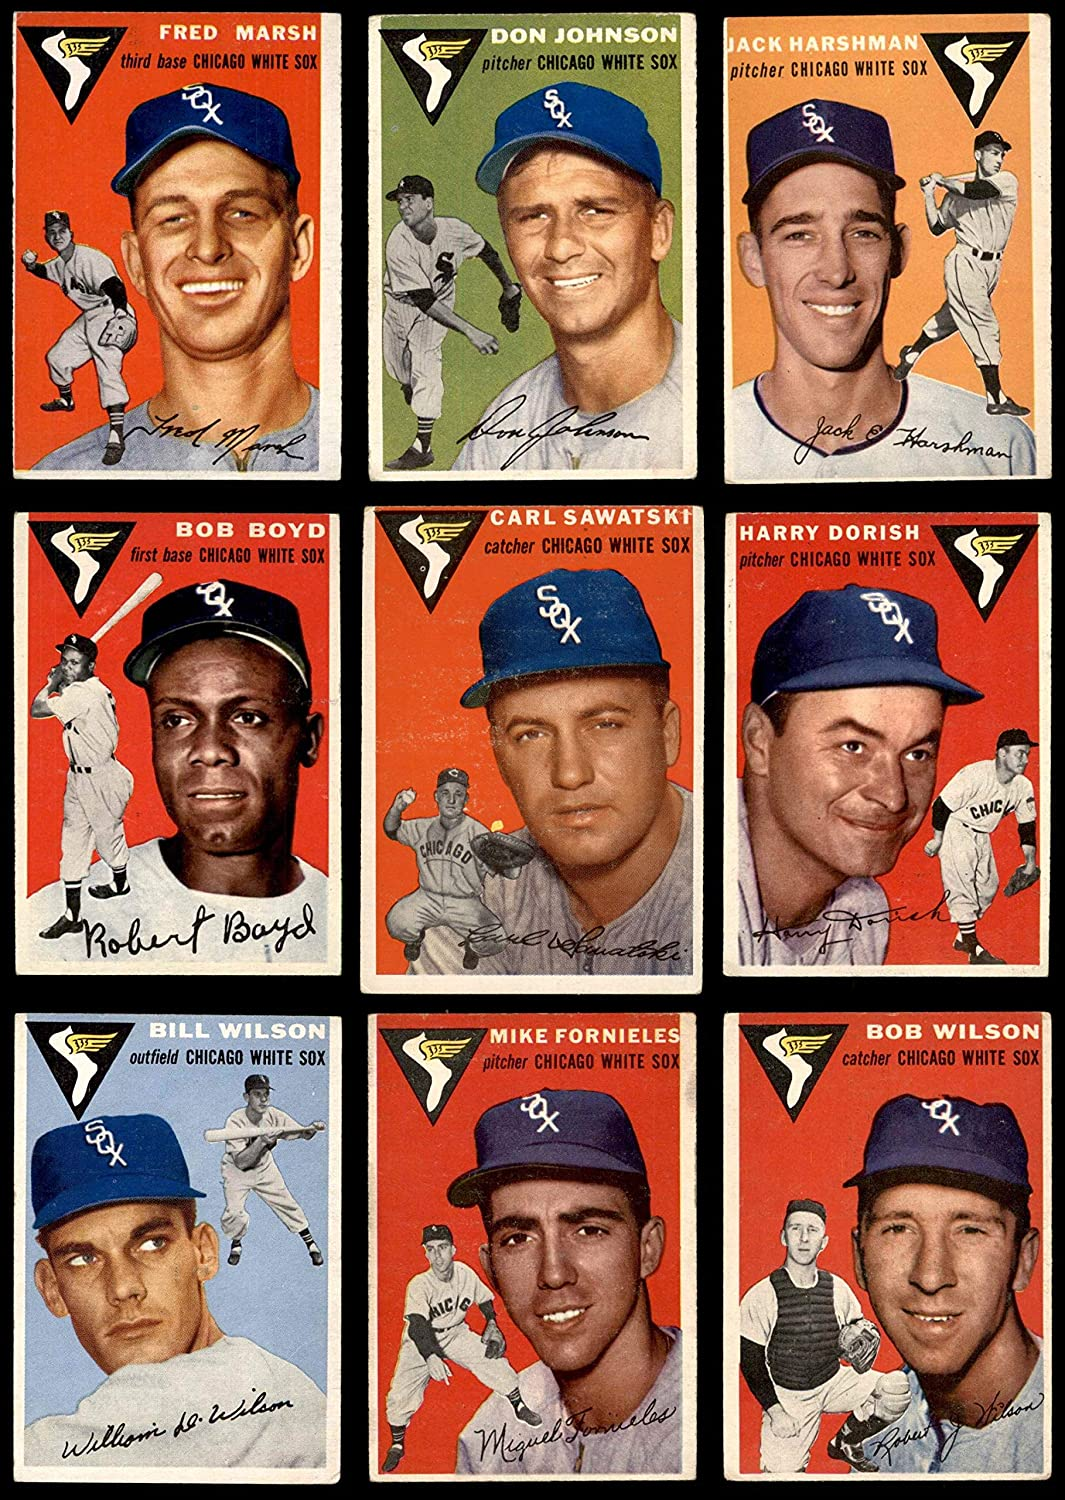 1954 Topps Chicago White Sox Team Set Chicago White Sox (Baseball Set) Dean's Cards 3.5 - VG+ White Sox 91NyTSSe1LLSL1500_